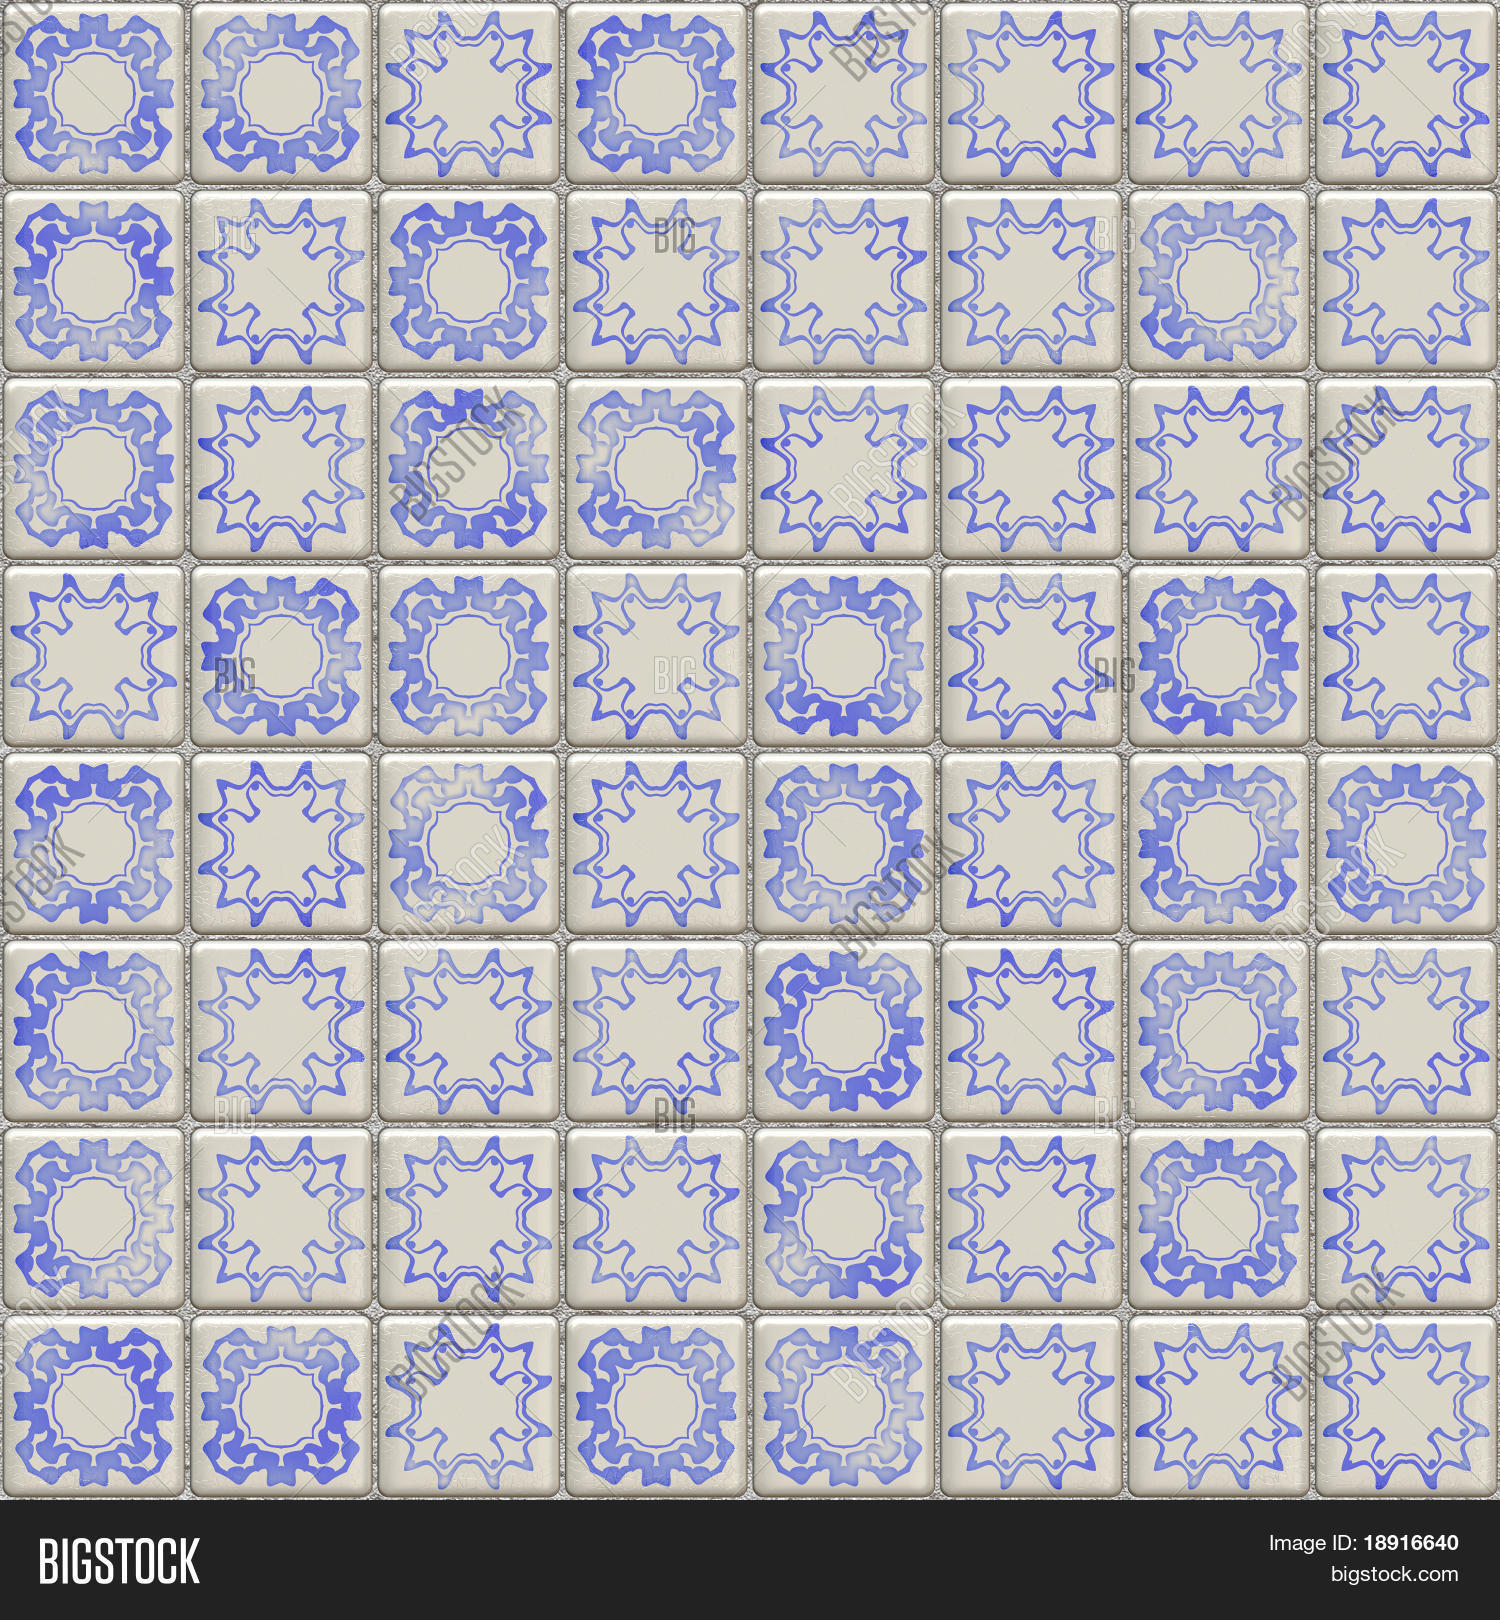 Dutch ceramic tiles tillable image photo bigstock dutch ceramic tiles tillable seamlessly as a pattern dailygadgetfo Image collections